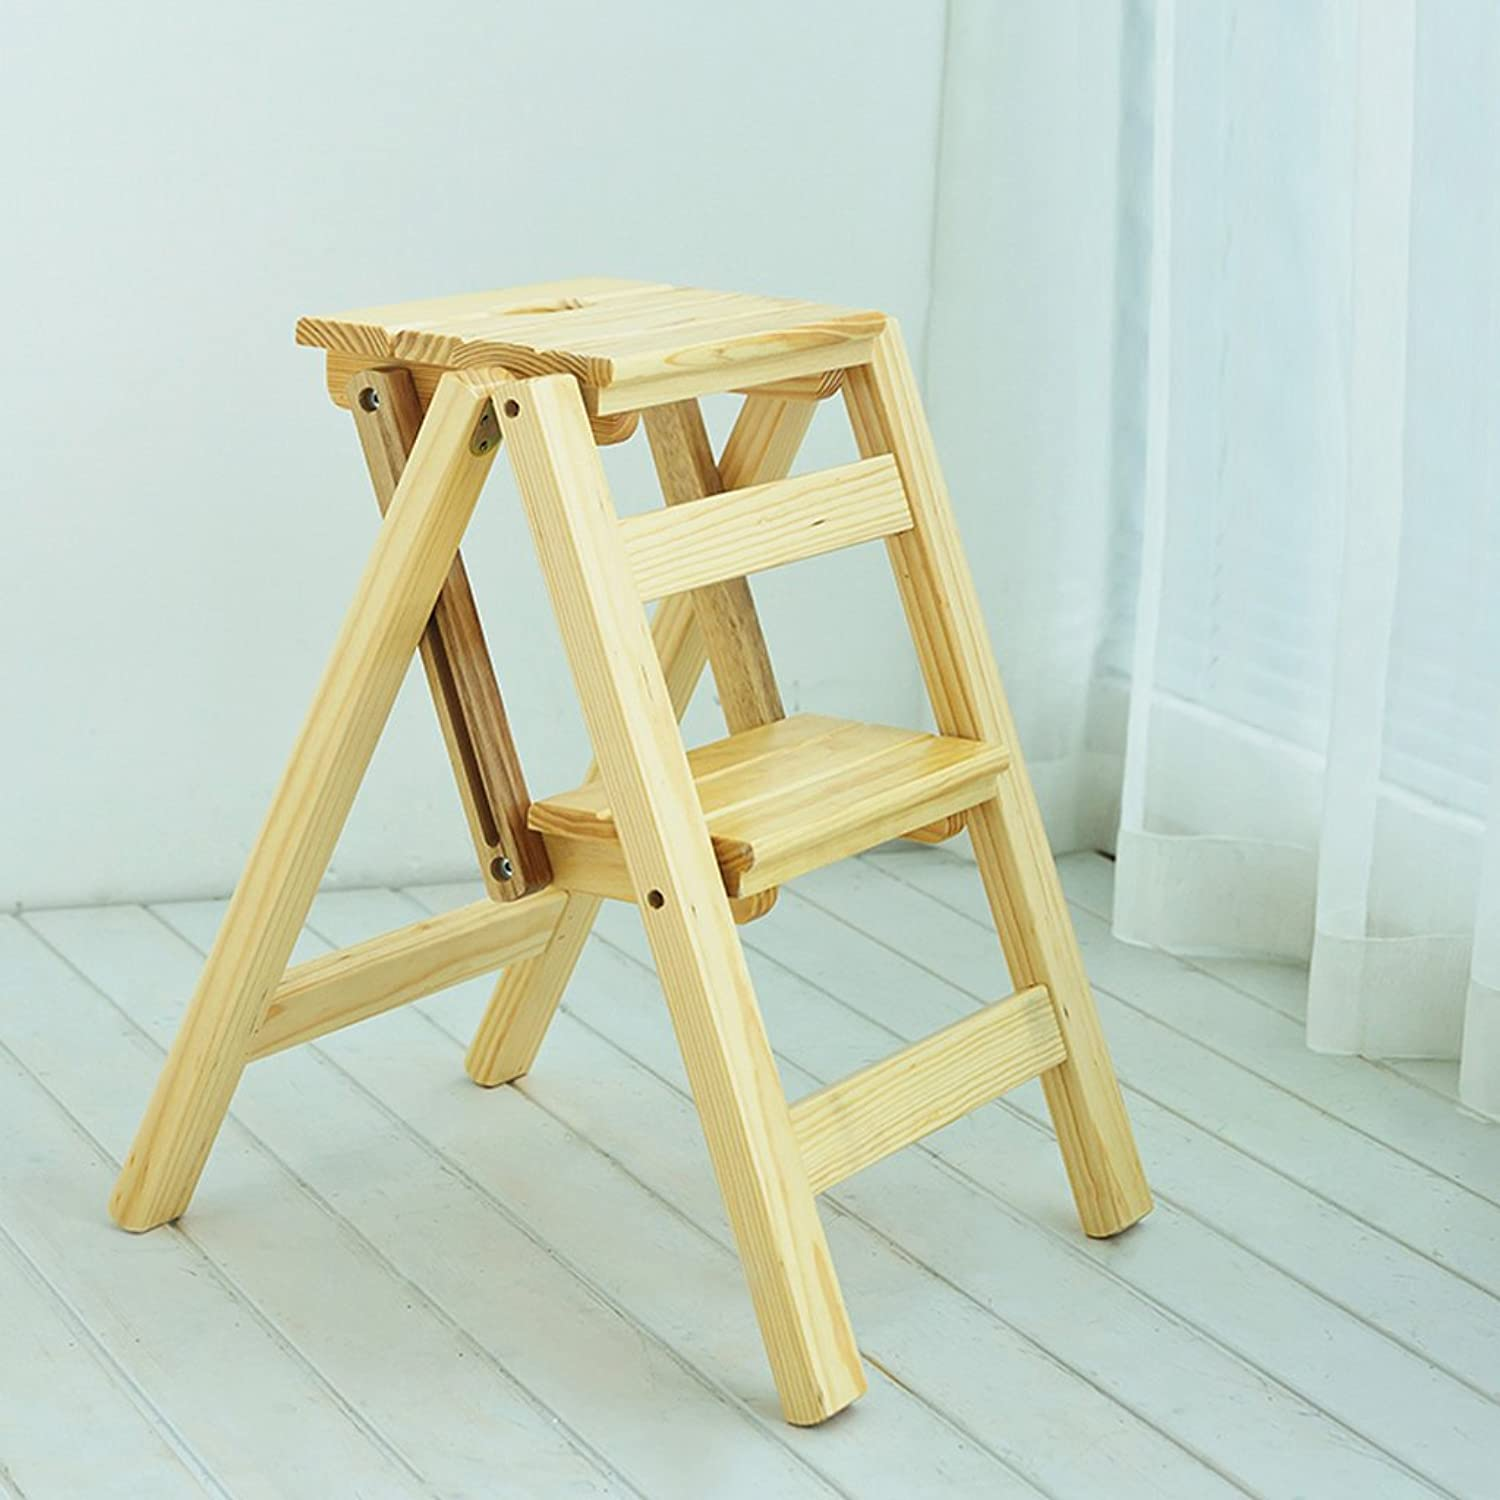 2 3 Layers of Solid Wood Folding Ladder Home Kitchen Indoor Ascends Ladder Double Stair Chair Furniture (color   Natural Wood color, Size   2 Layer)